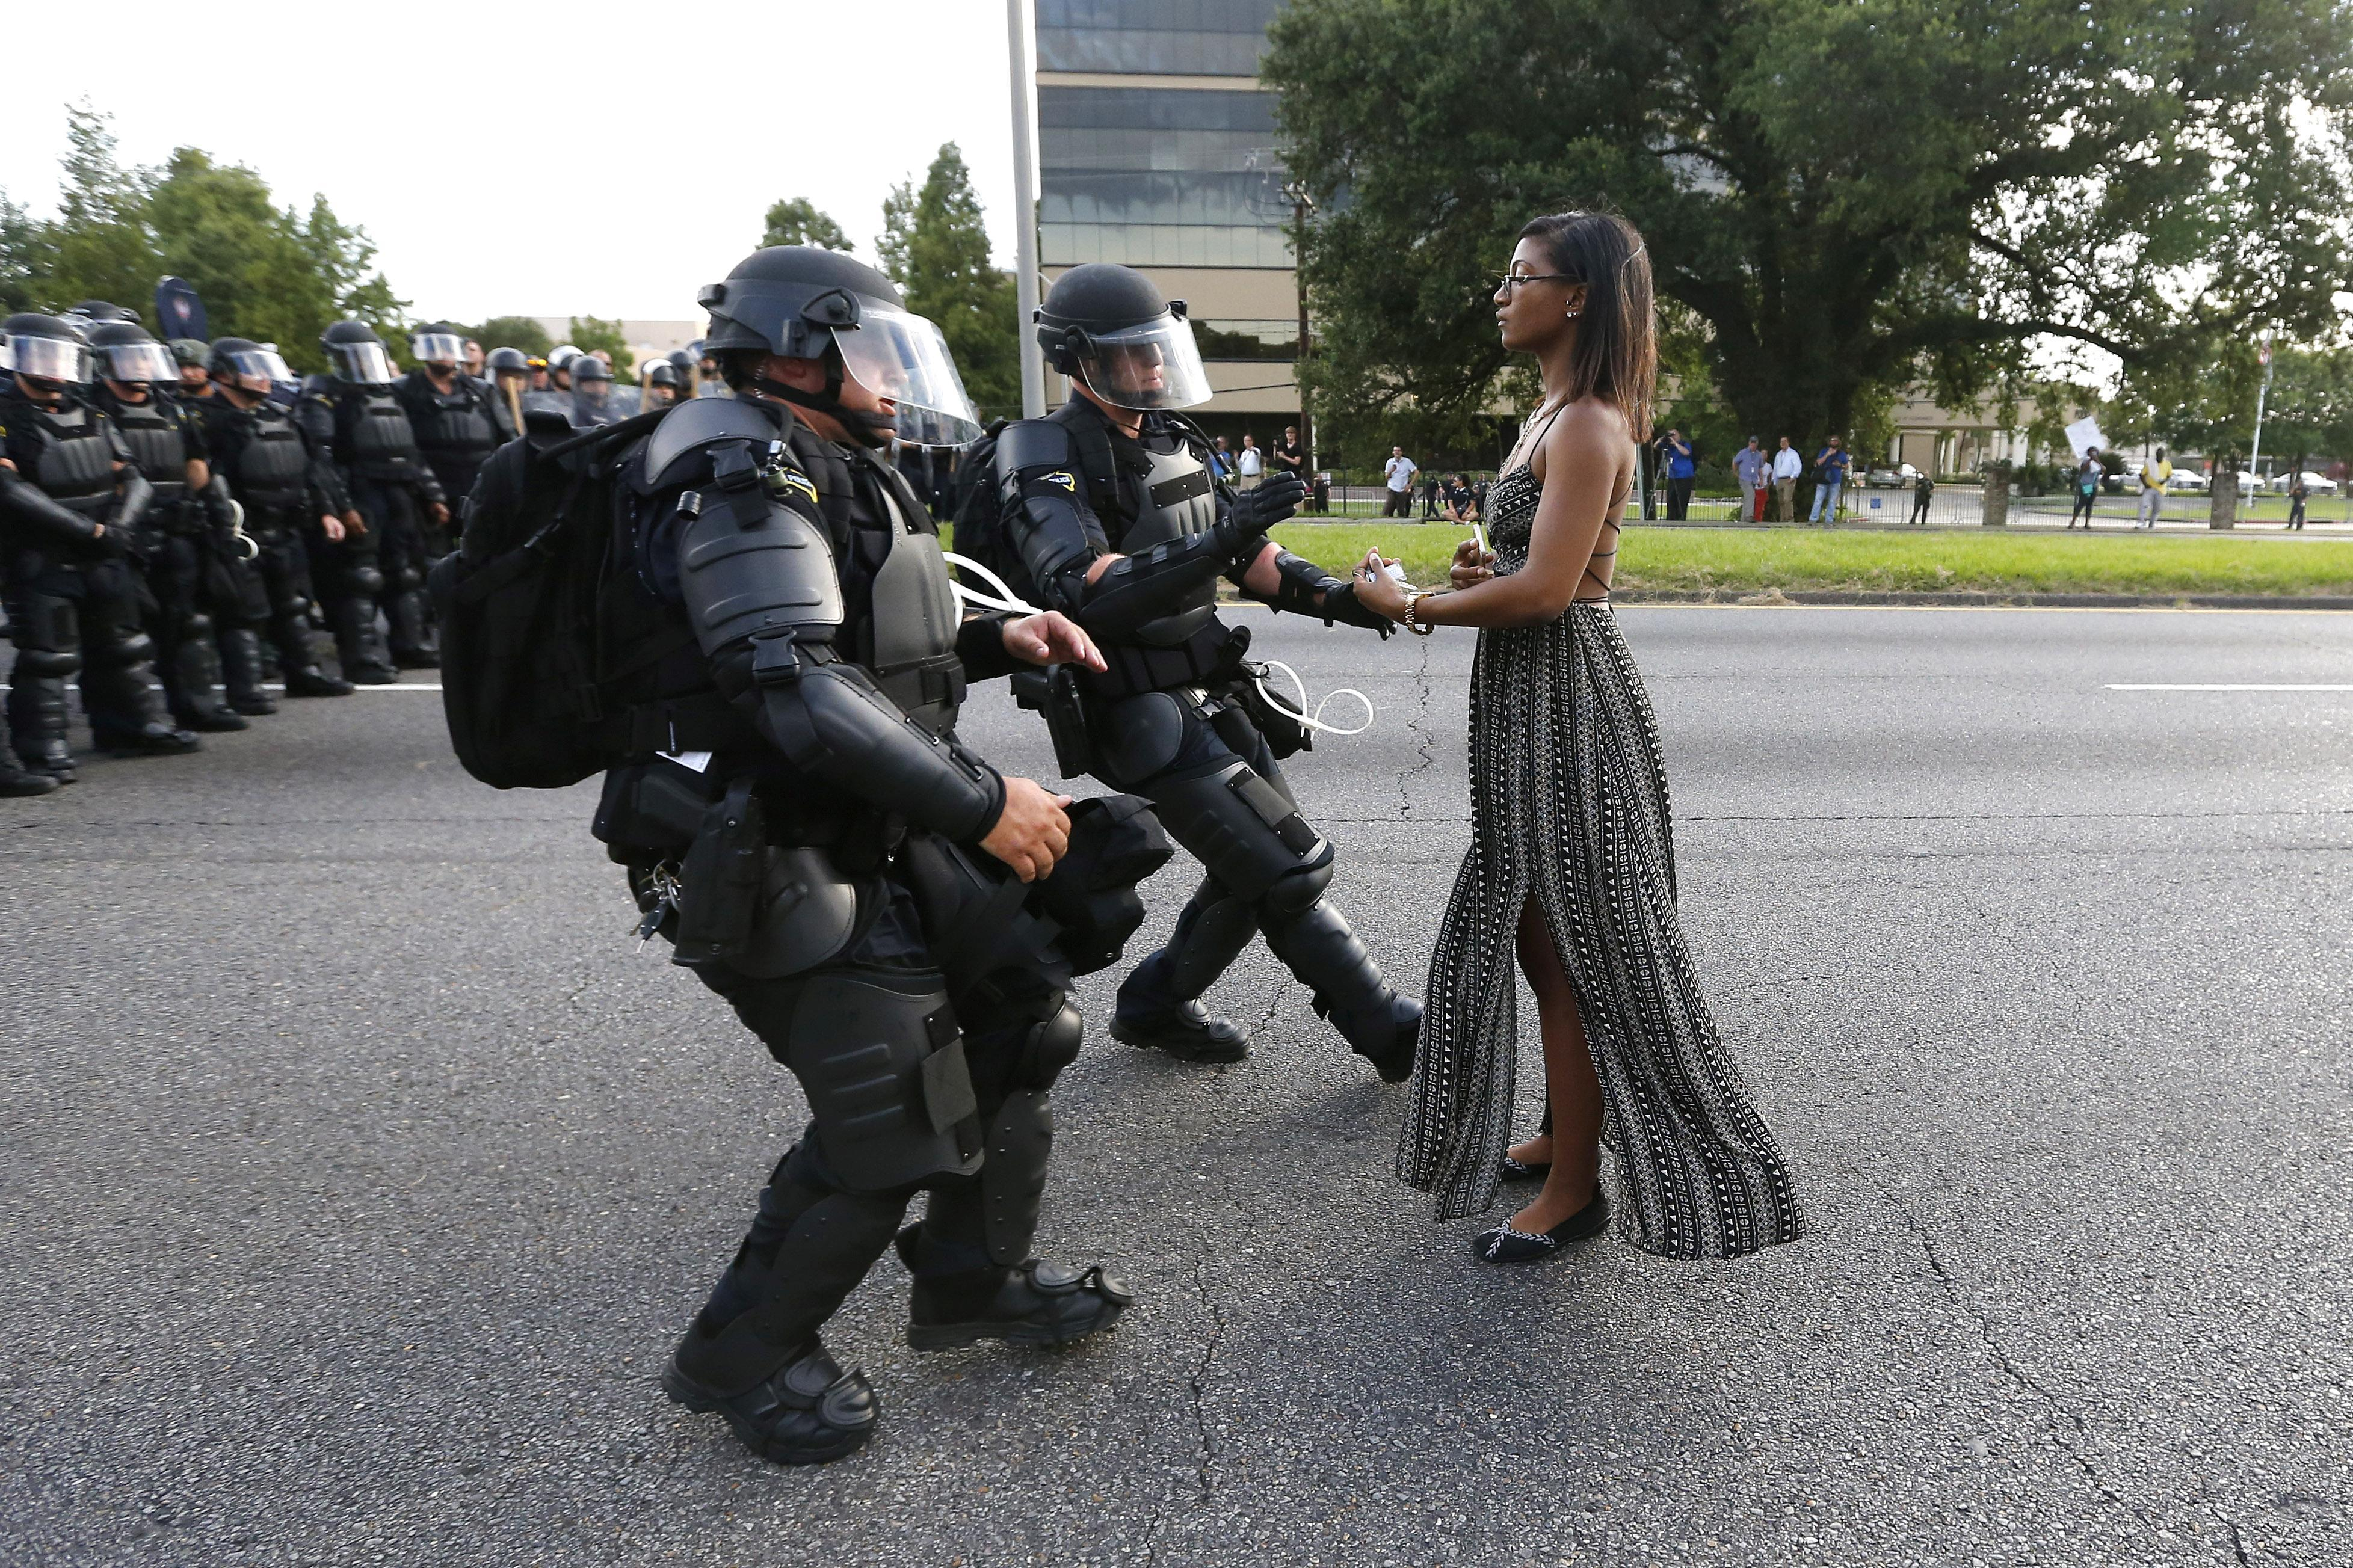 Baton Rouge Protester From Iconic Photo Identified as Ieshia Evans